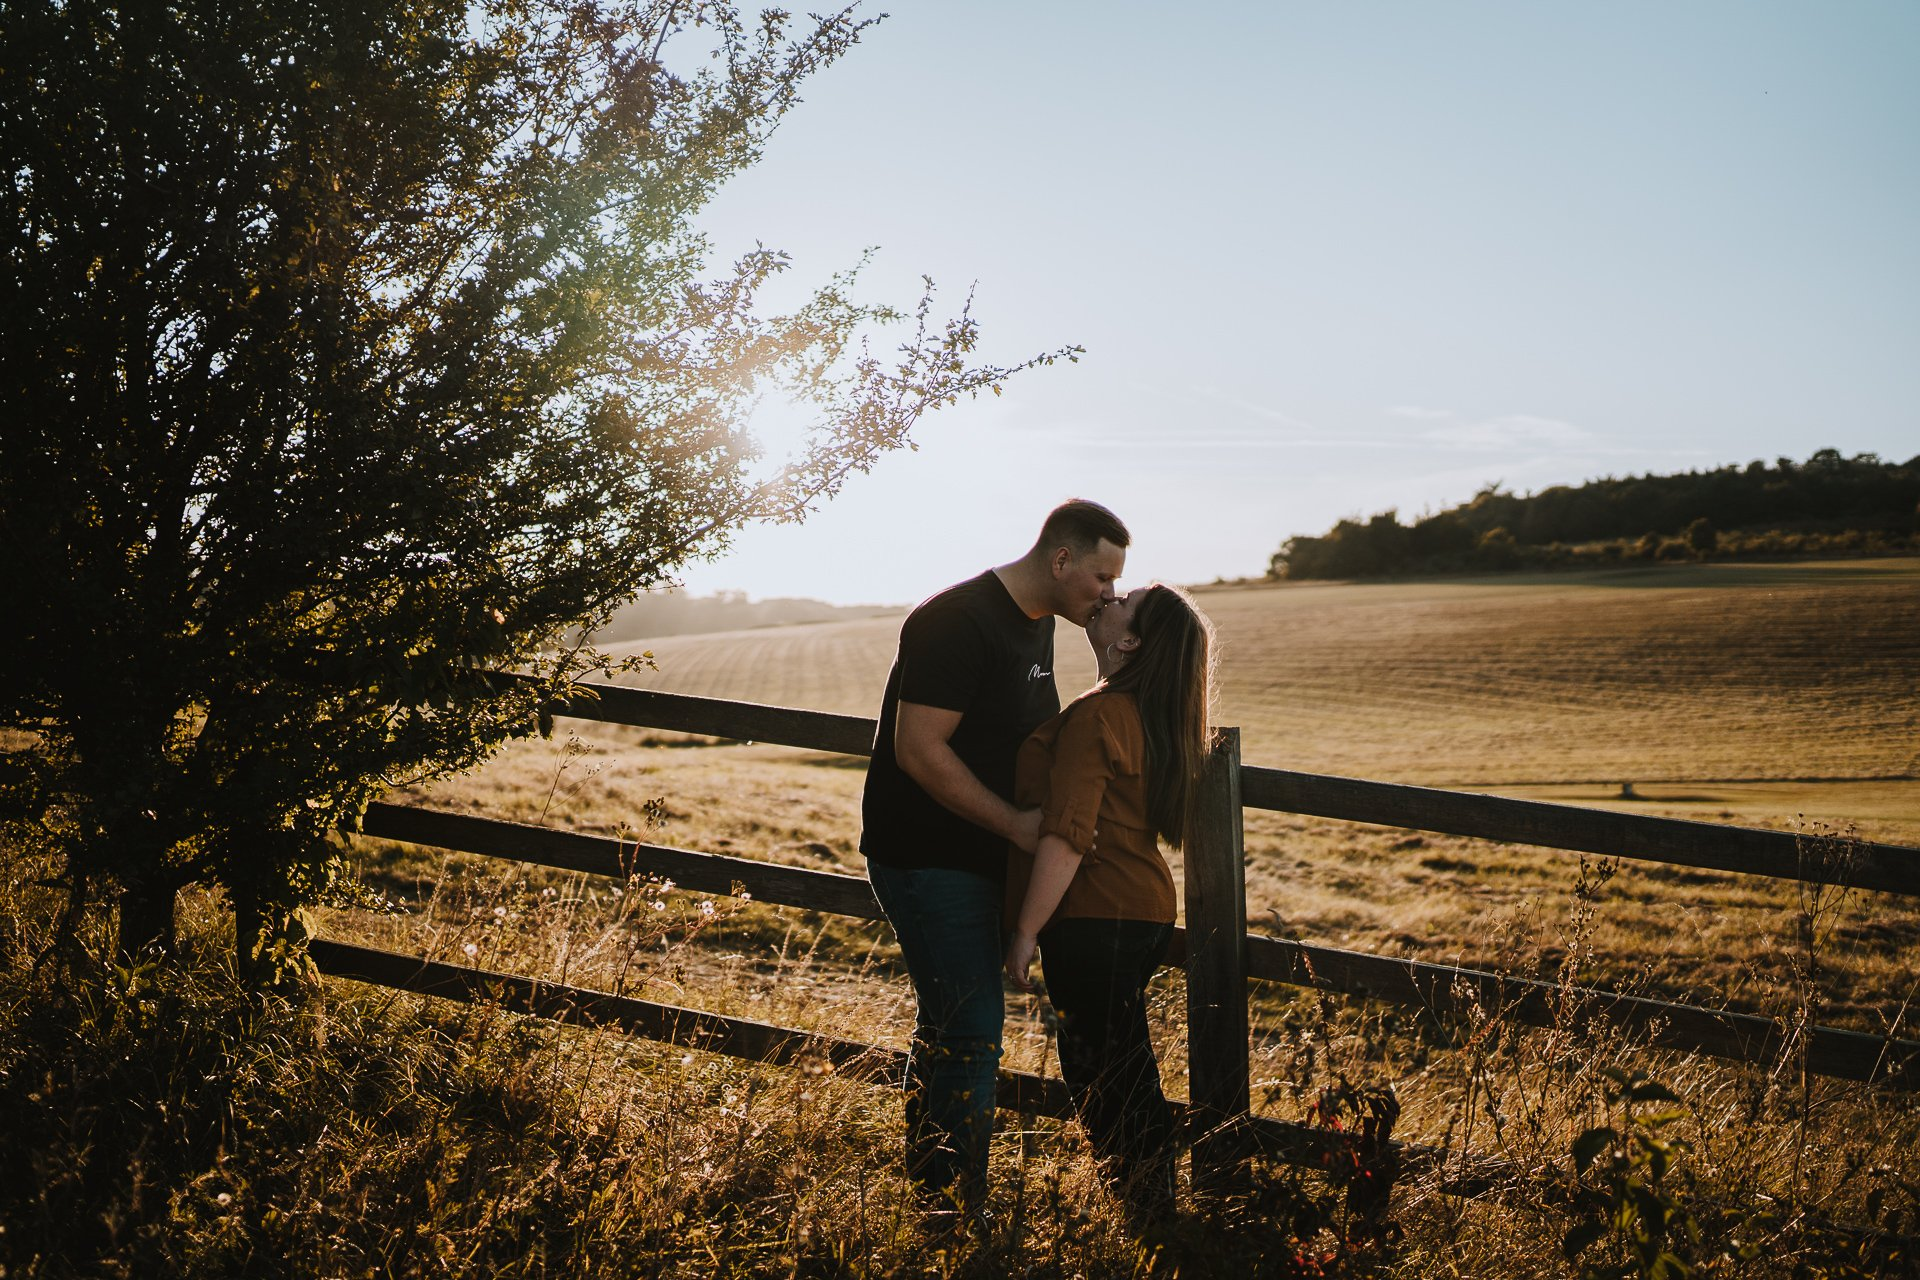 Engaged couple looking at each other during their autumnal sunset engagement shoot at Lullingstone Country Park, Kent